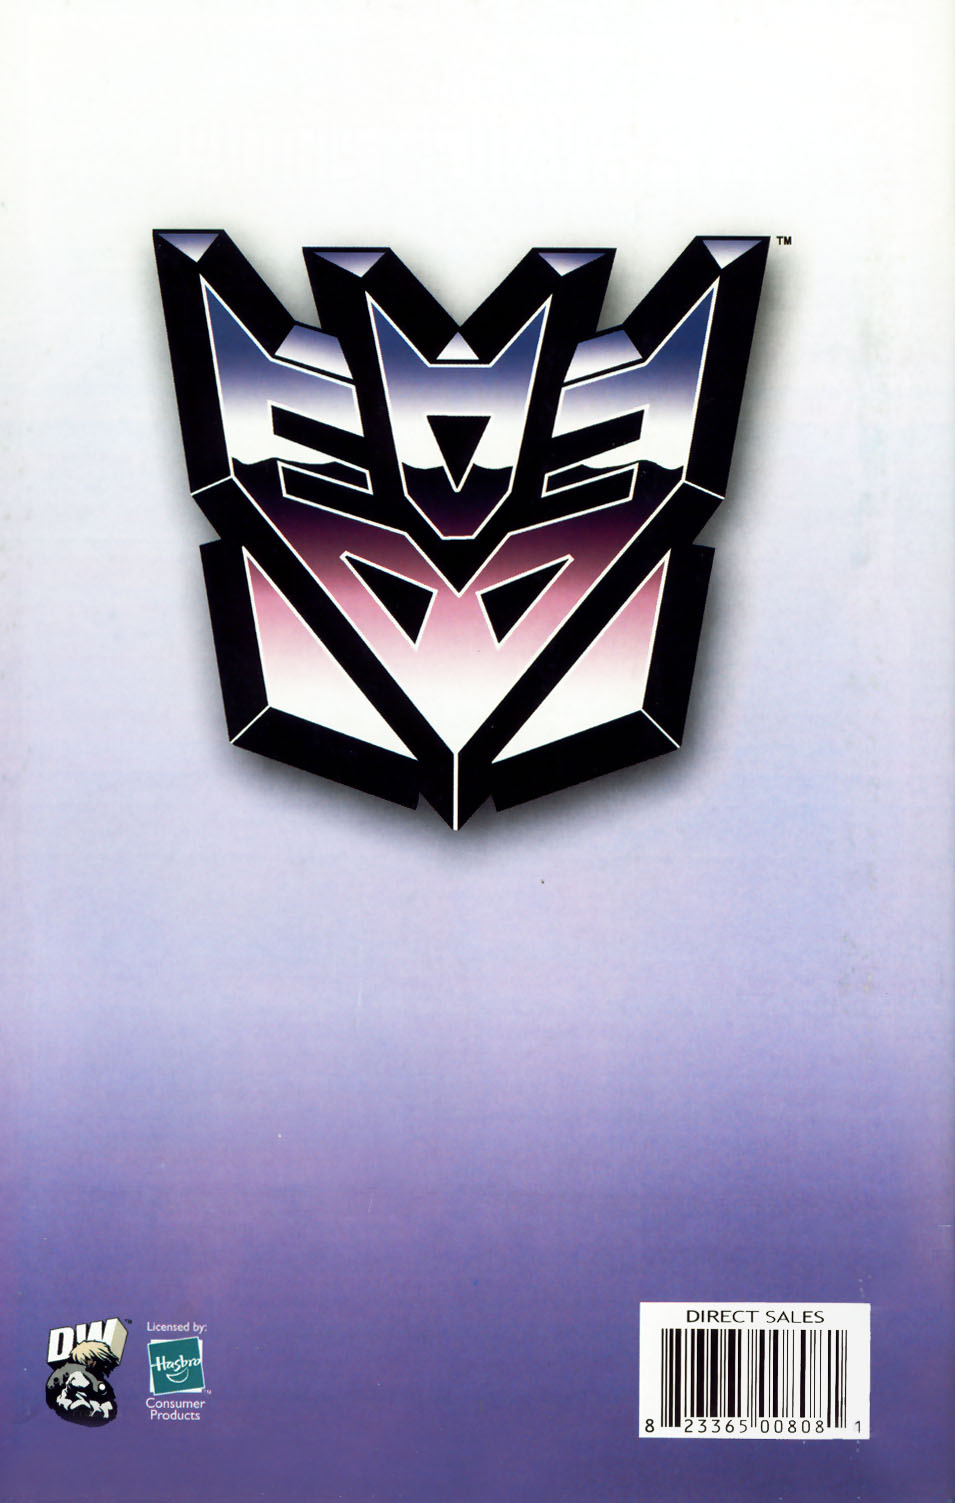 Read online Transformers: More than Meets the Eye comic -  Issue #8 - 61